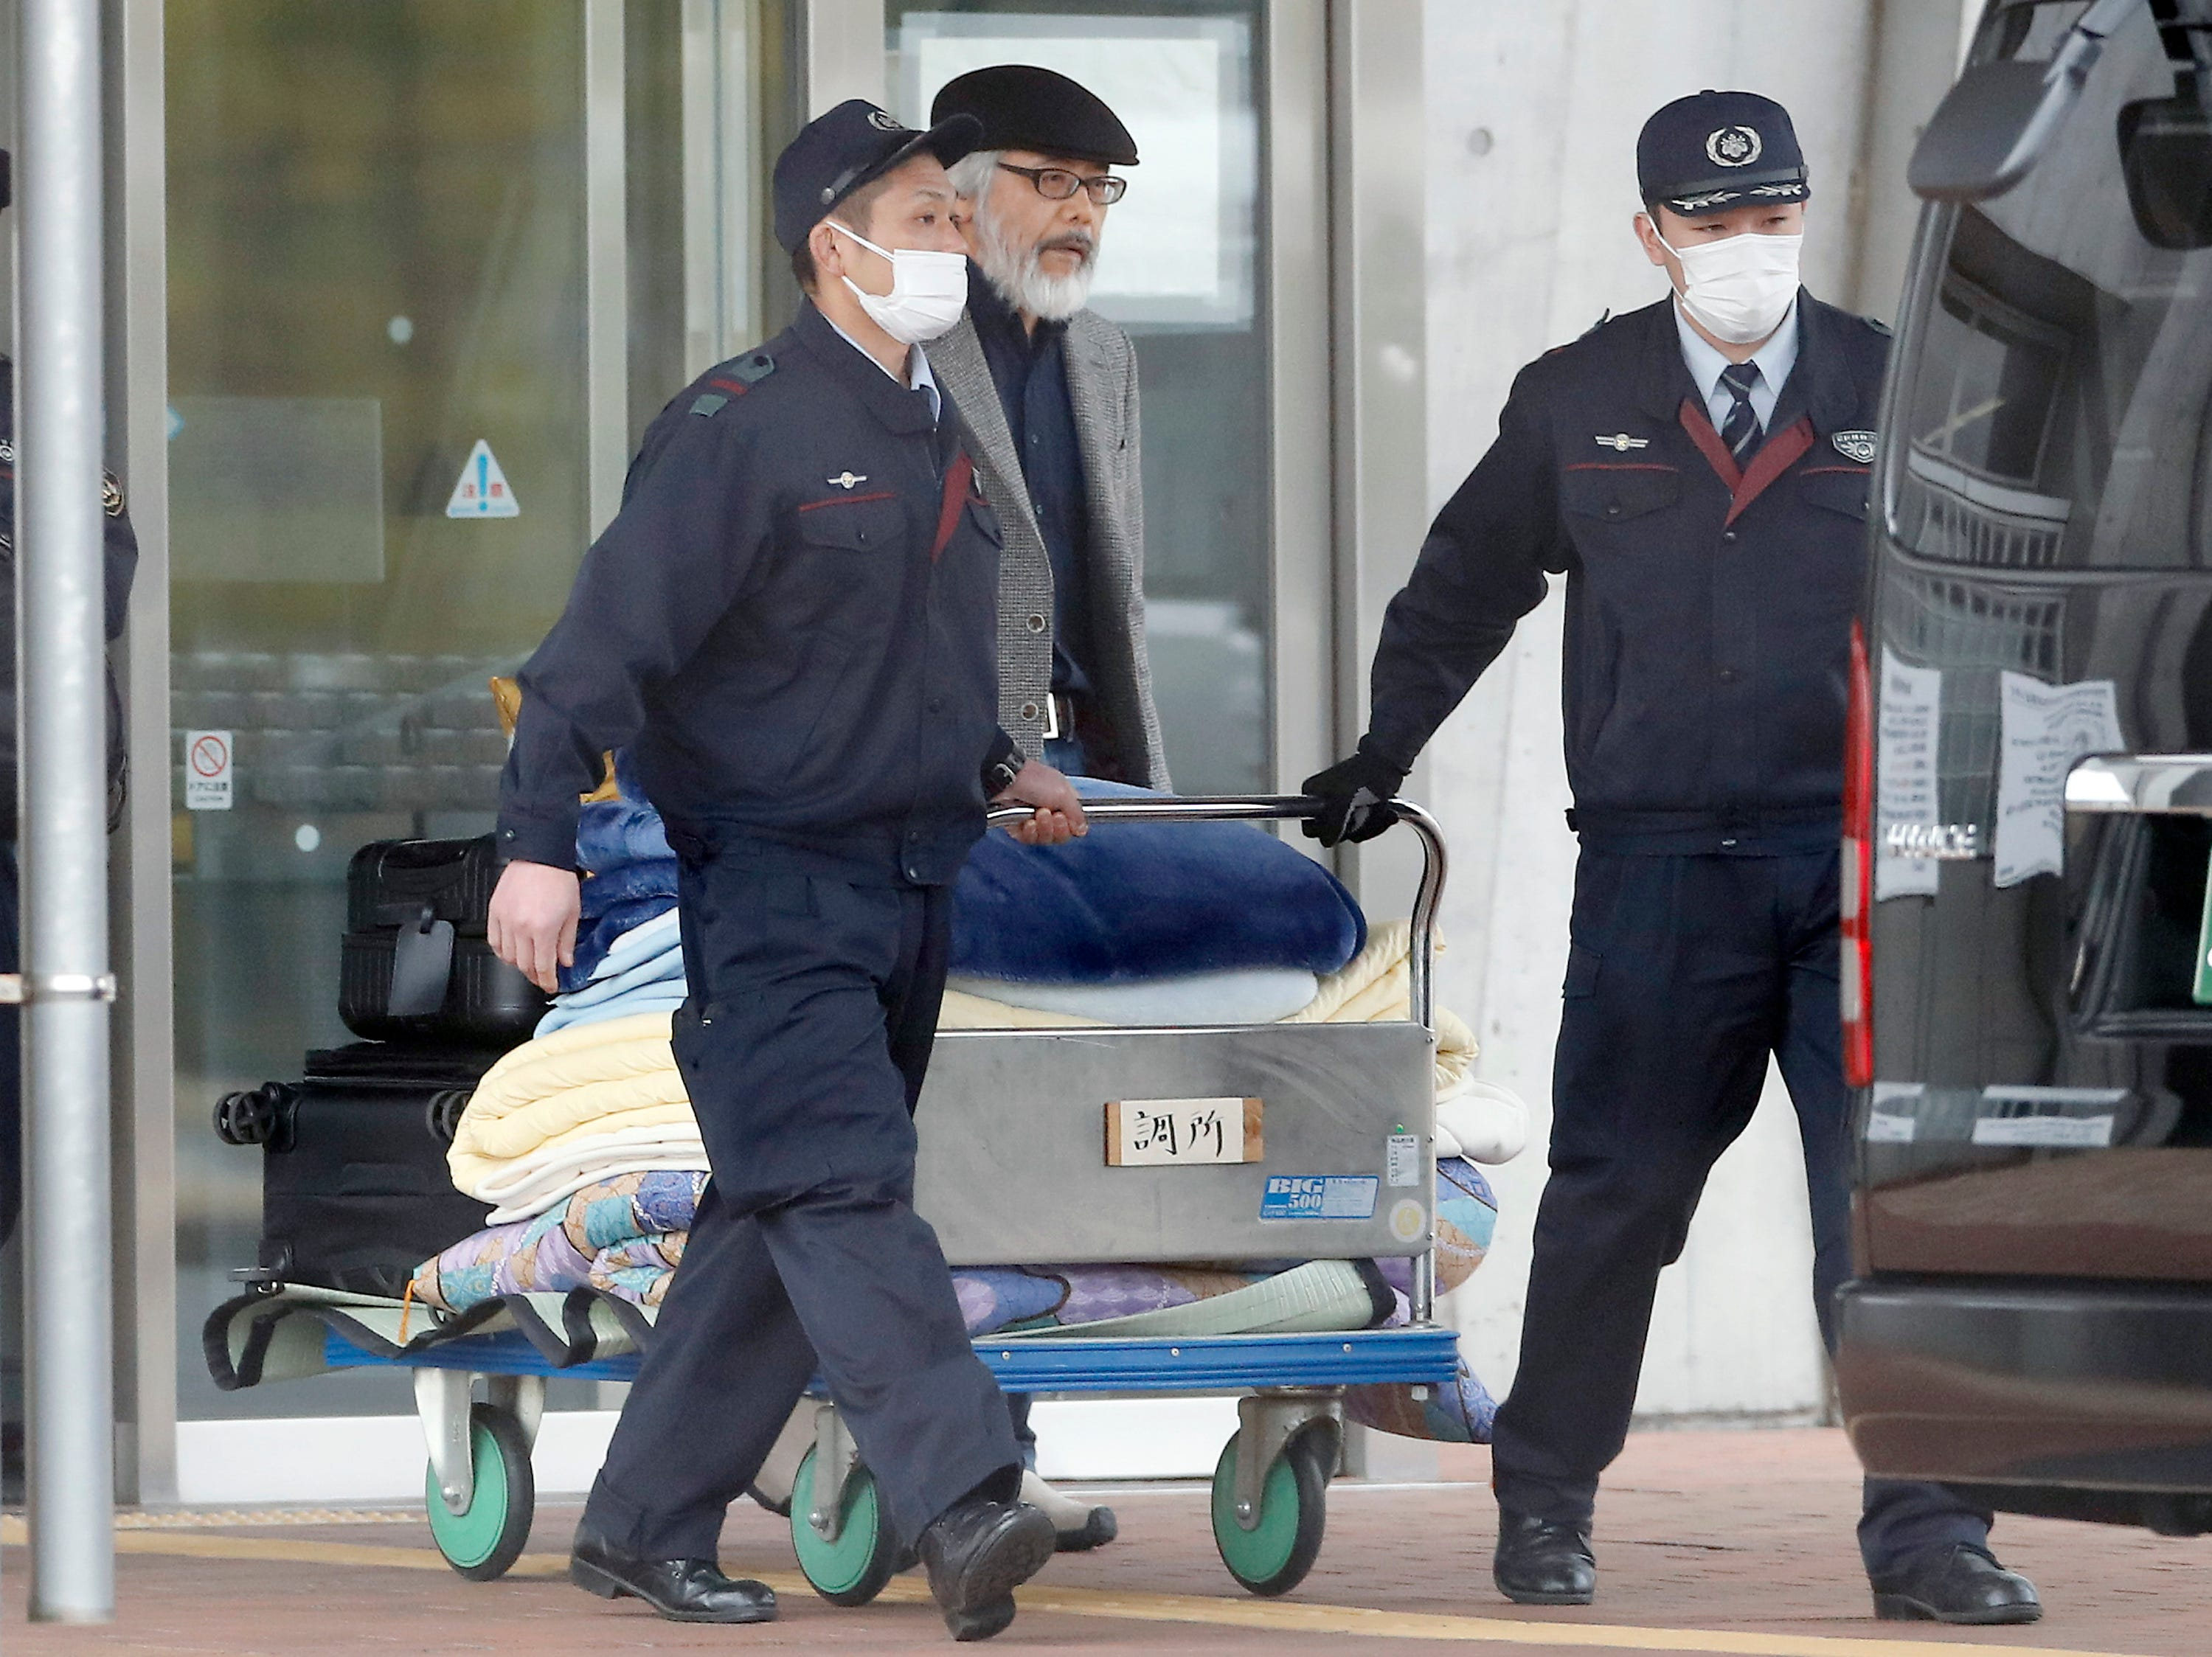 In this March 6, 2019, photo, Takashi Takano, center, lawyer of former Nissan chairman Carlos Ghosn, carries bags and other belonging believed to be of Carlos Ghosn from Tokyo Detention Center in Tokyo. The mystery of Carlos Ghosn's strange attire when he was released from Japanese detention has been solved, with his lawyer Takano saying Friday, March 8, that it was an effort to protect the former chairman of Nissan from intense media attention. (AP Photo/Eugene Hoshiko)